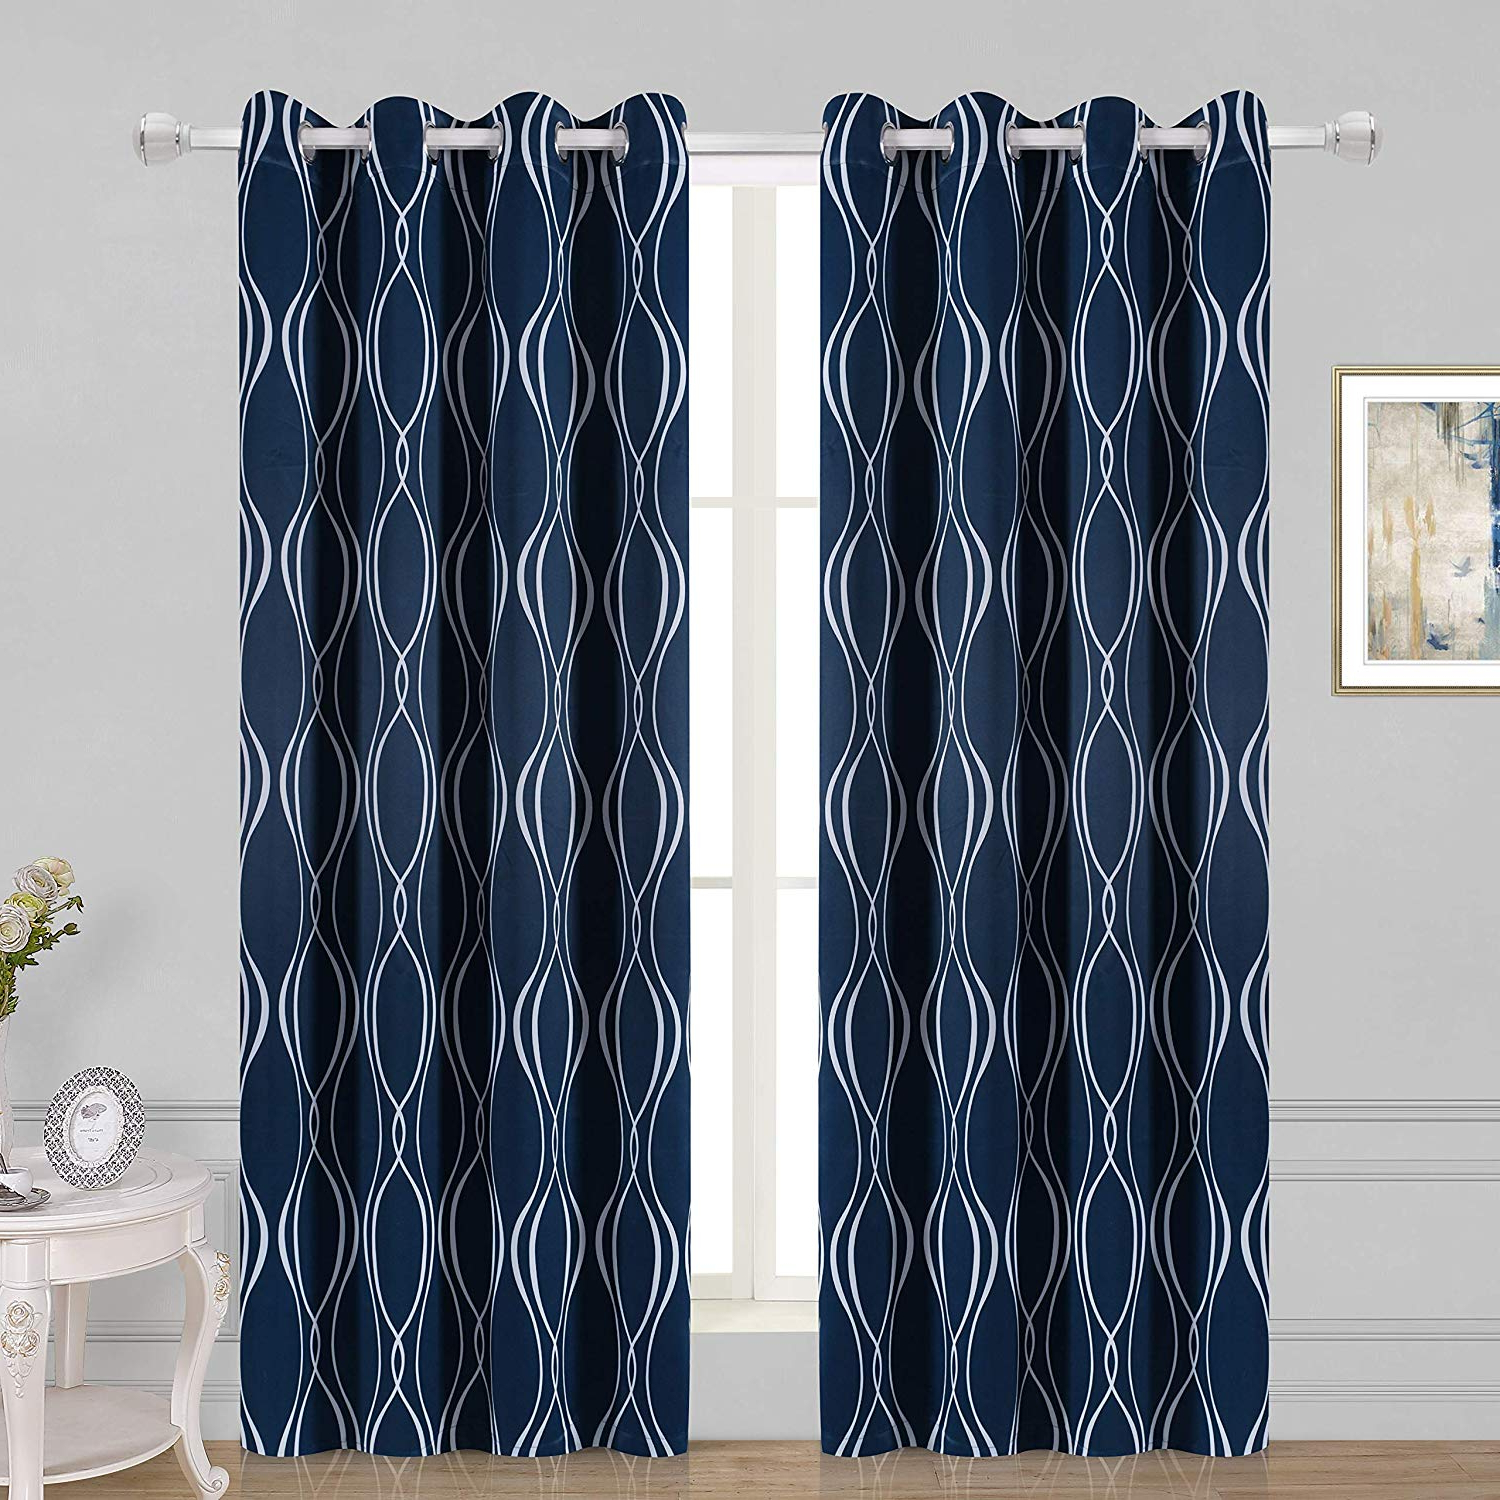 Popular Wontex Geometric Trellis Printed Thermal Insulated Blackout Curtains, Grommet Room Darkening Curtains For Living Room And Bedroom, Set Of 2 Curtain Intended For Geometric Print Textured Thermal Insulated Grommet Curtain Panels (View 12 of 20)